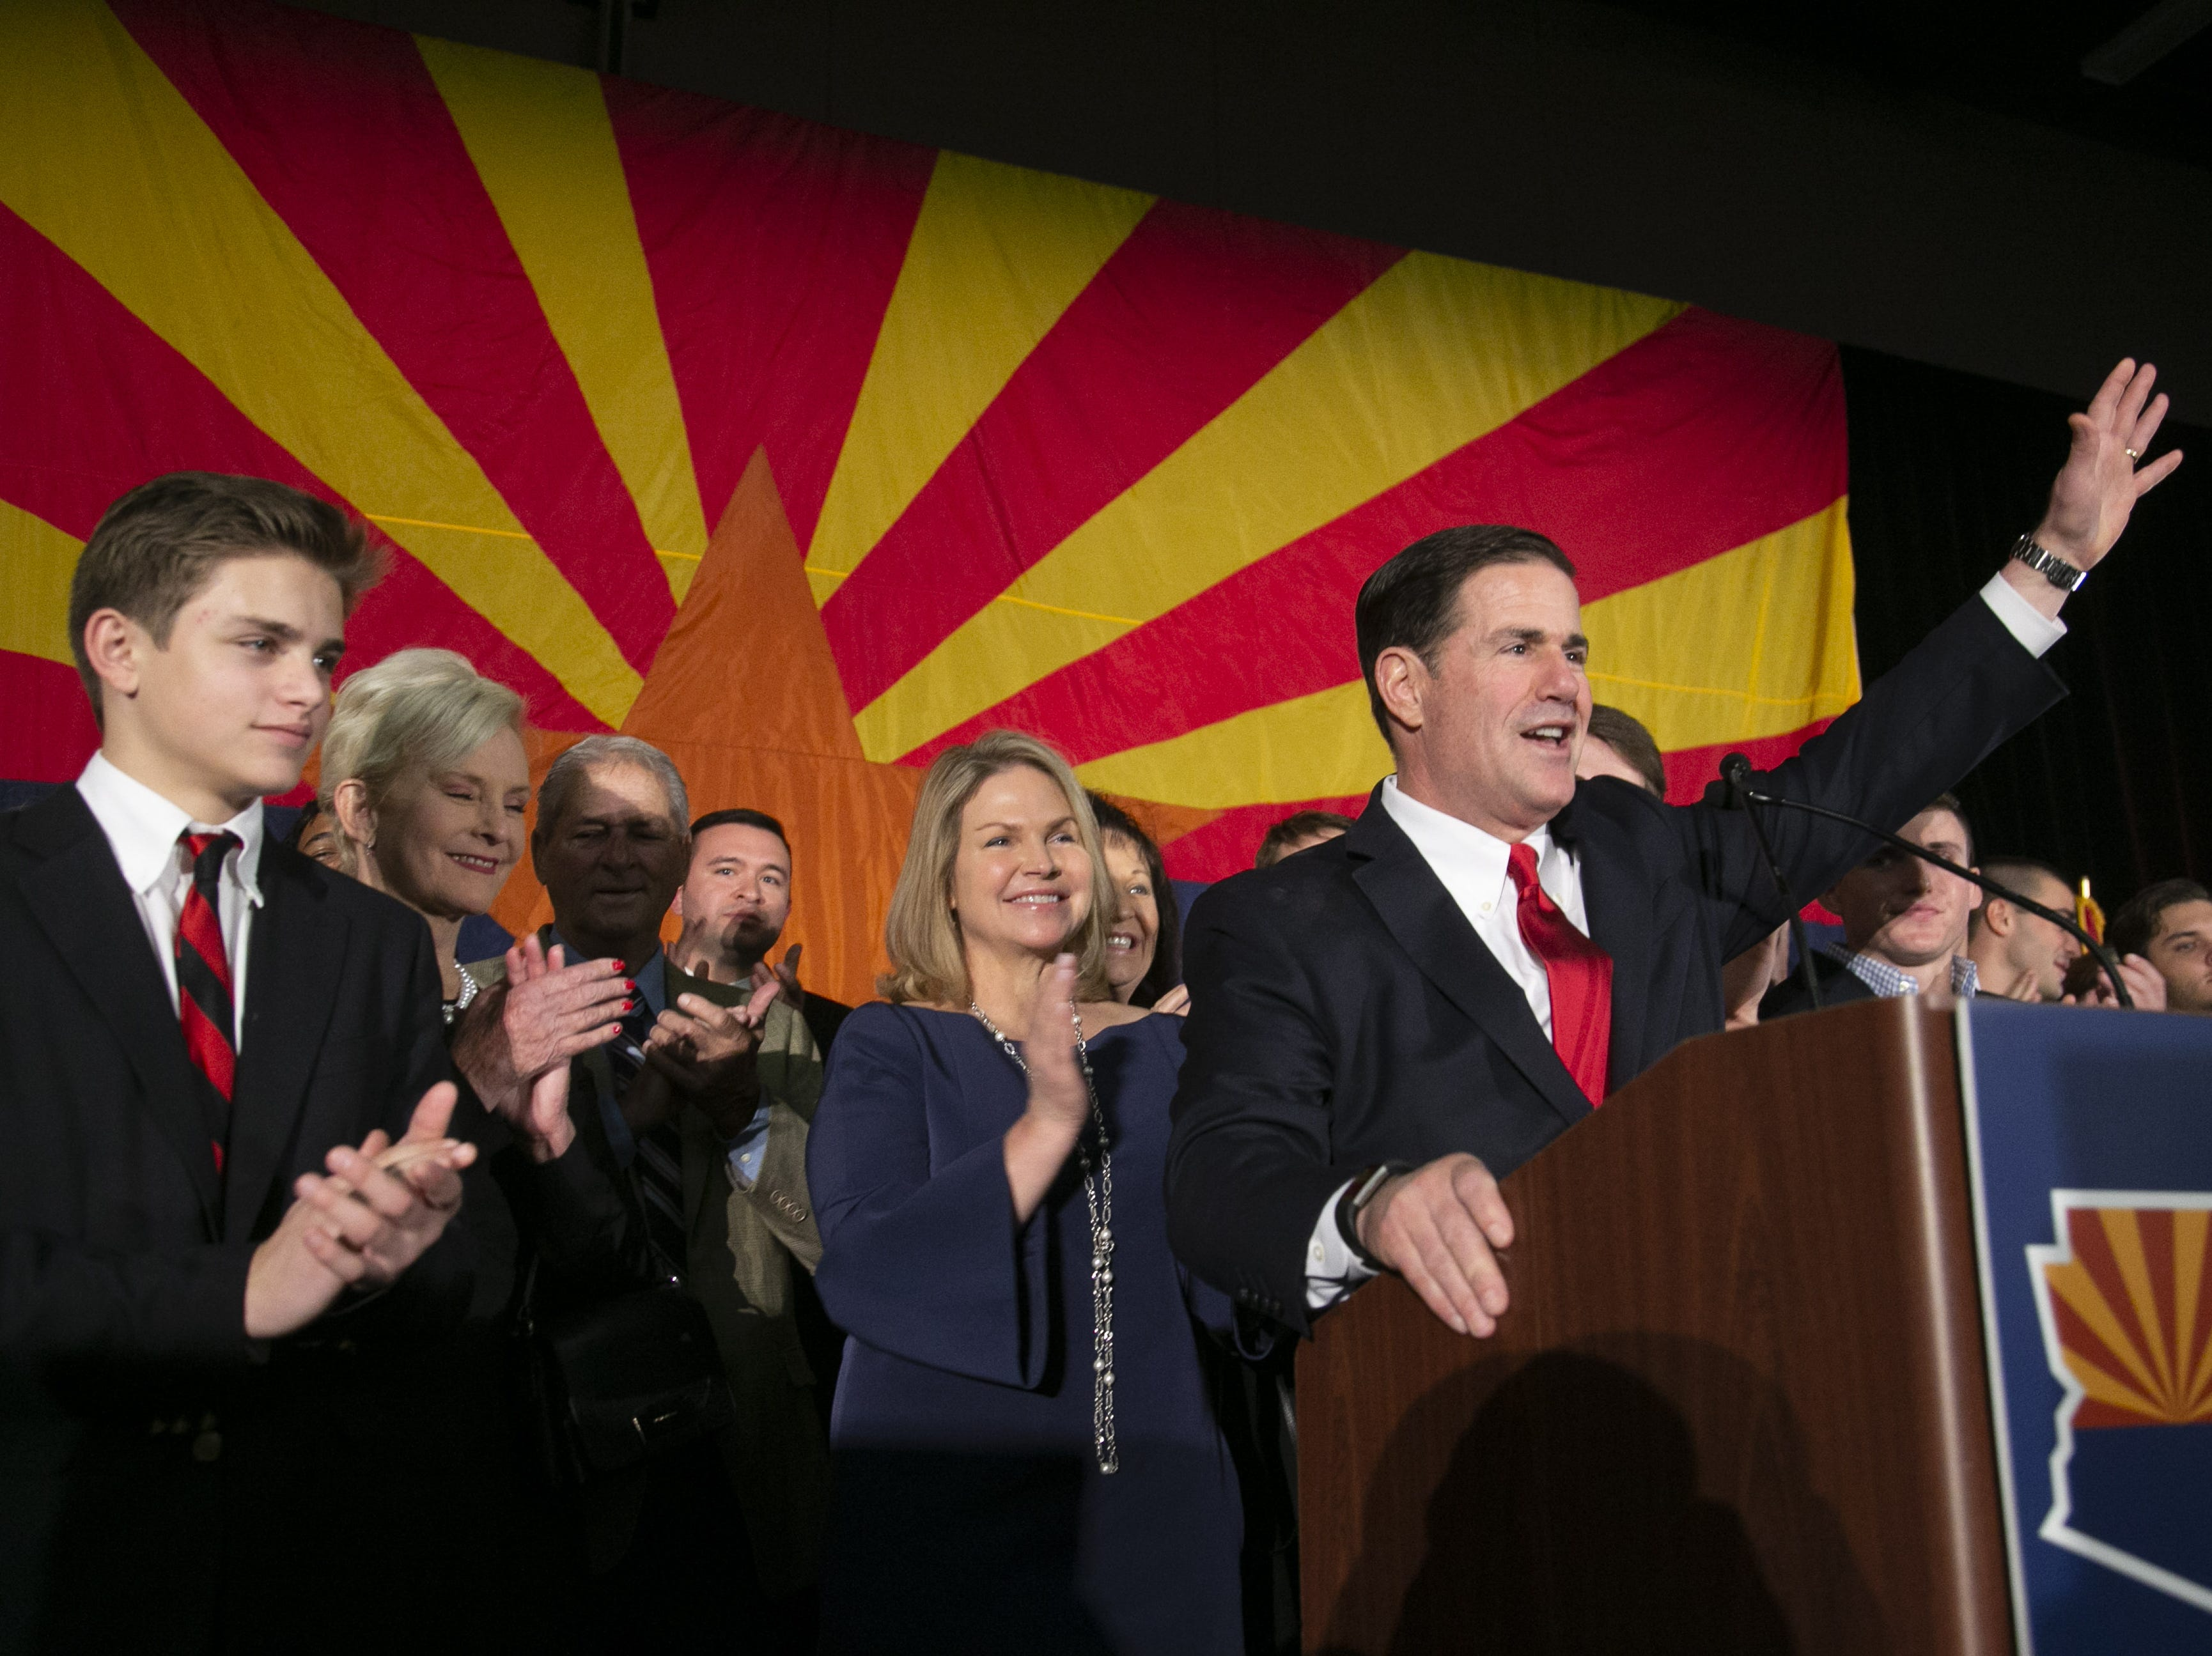 Governor Doug Ducey speaks alongside his wife, Angela, during the Republican watch party at the DoubleTree Resort in Scottsdale on  Nov. 6, 2018.